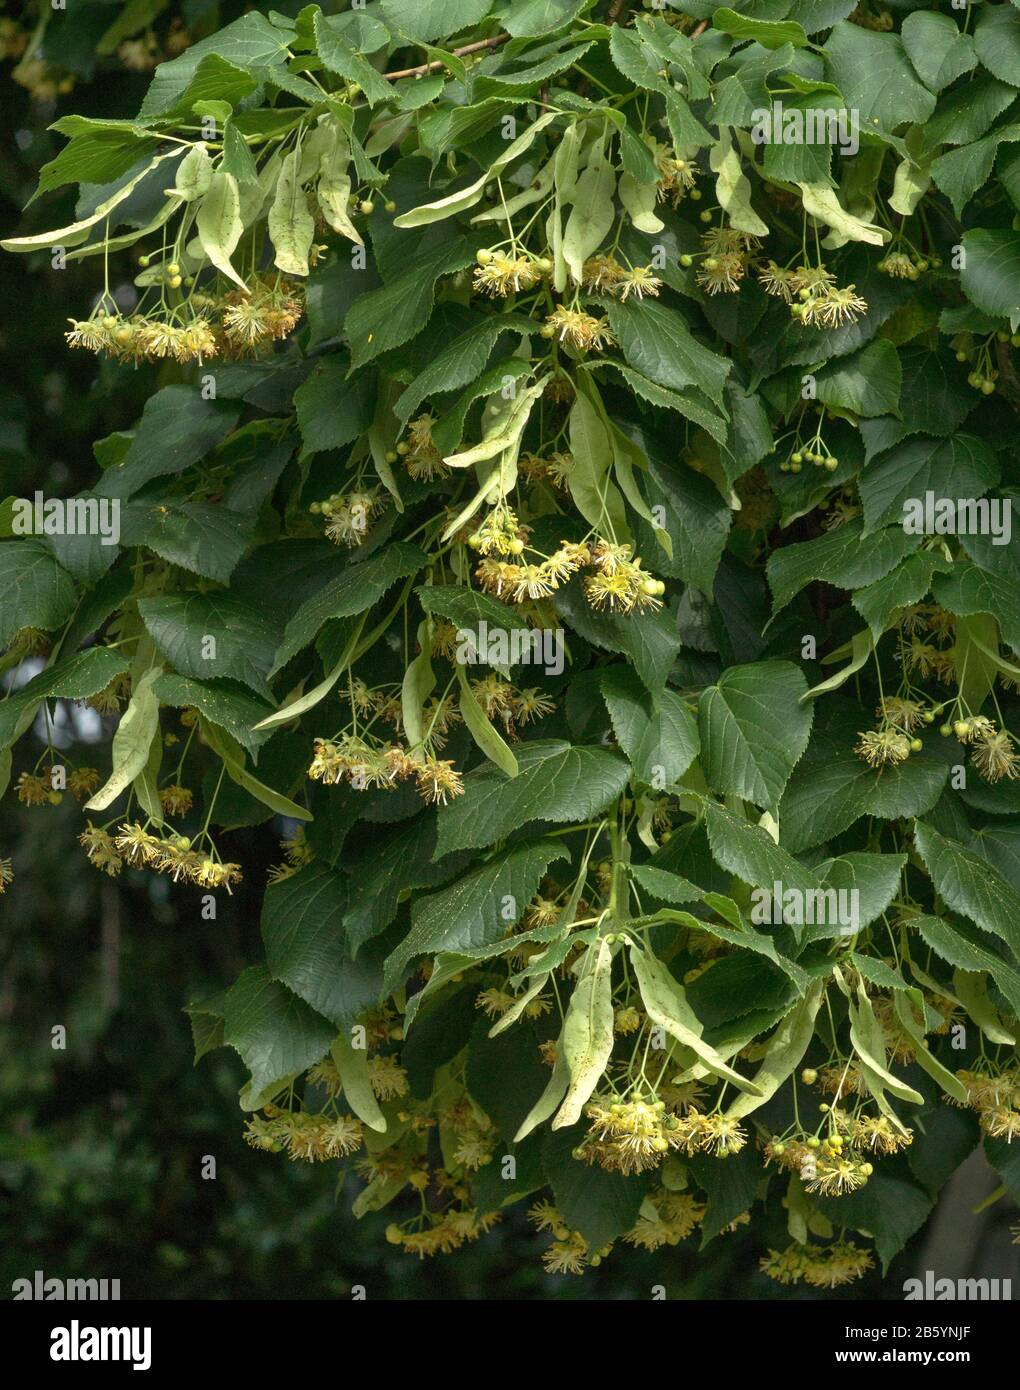 Flowers in South-west France.Large-leaved Lime Tree (Tilia platyphyllos) in flower and with developing fruits on their bracts. Stock Photo